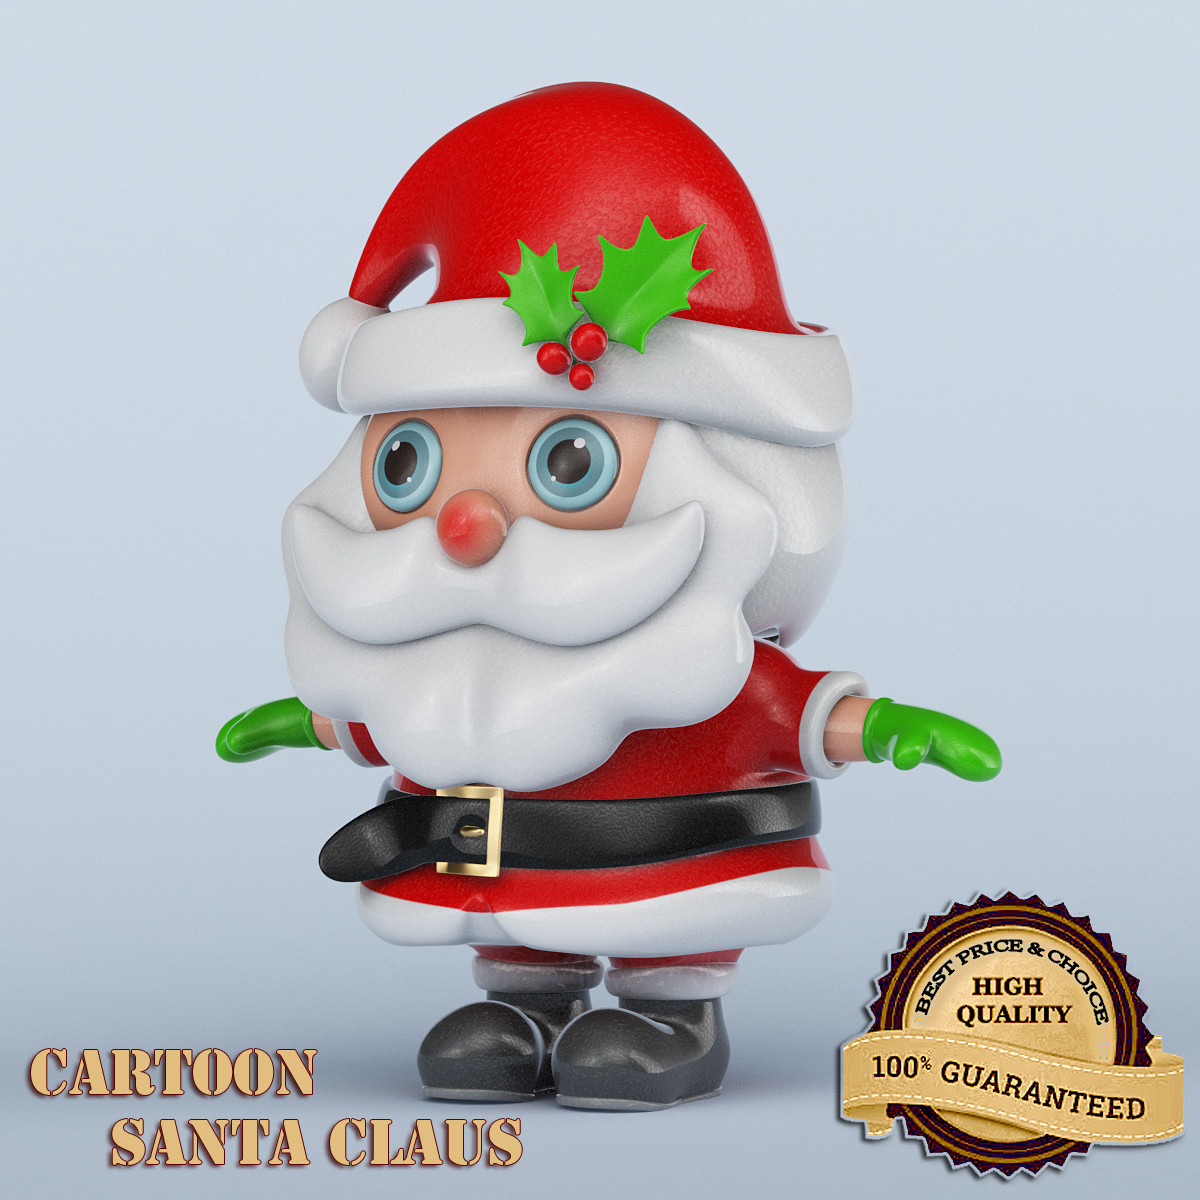 007_Cartoon Santa Claus.jpg